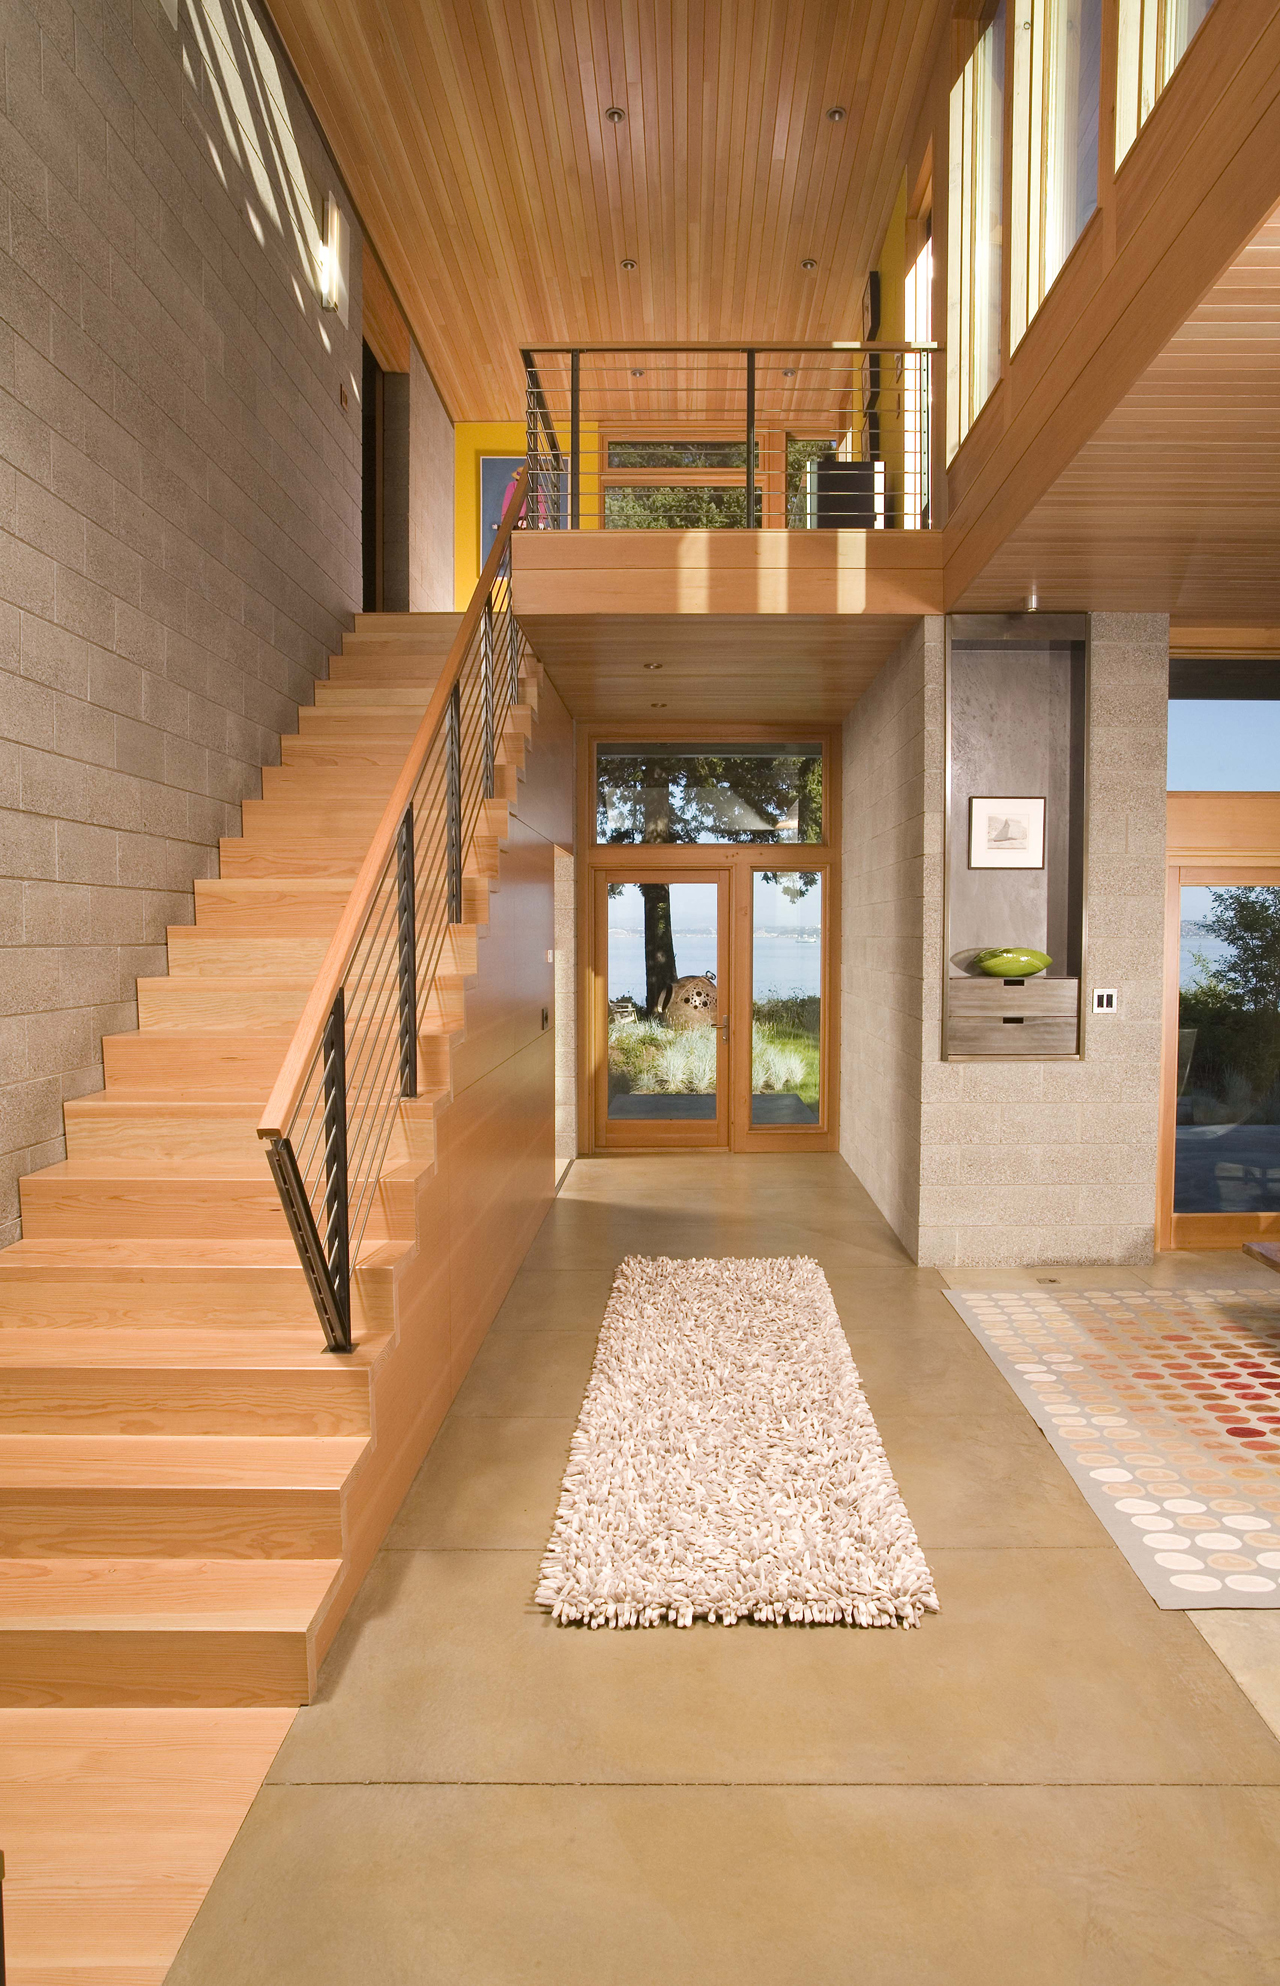 This lovely, warm entryway has a main living area to the right, a staircase to the left, and the short hallway straight ahead leads to the backyard. The entryway is a combination of warm wood and neutral stone tiles.